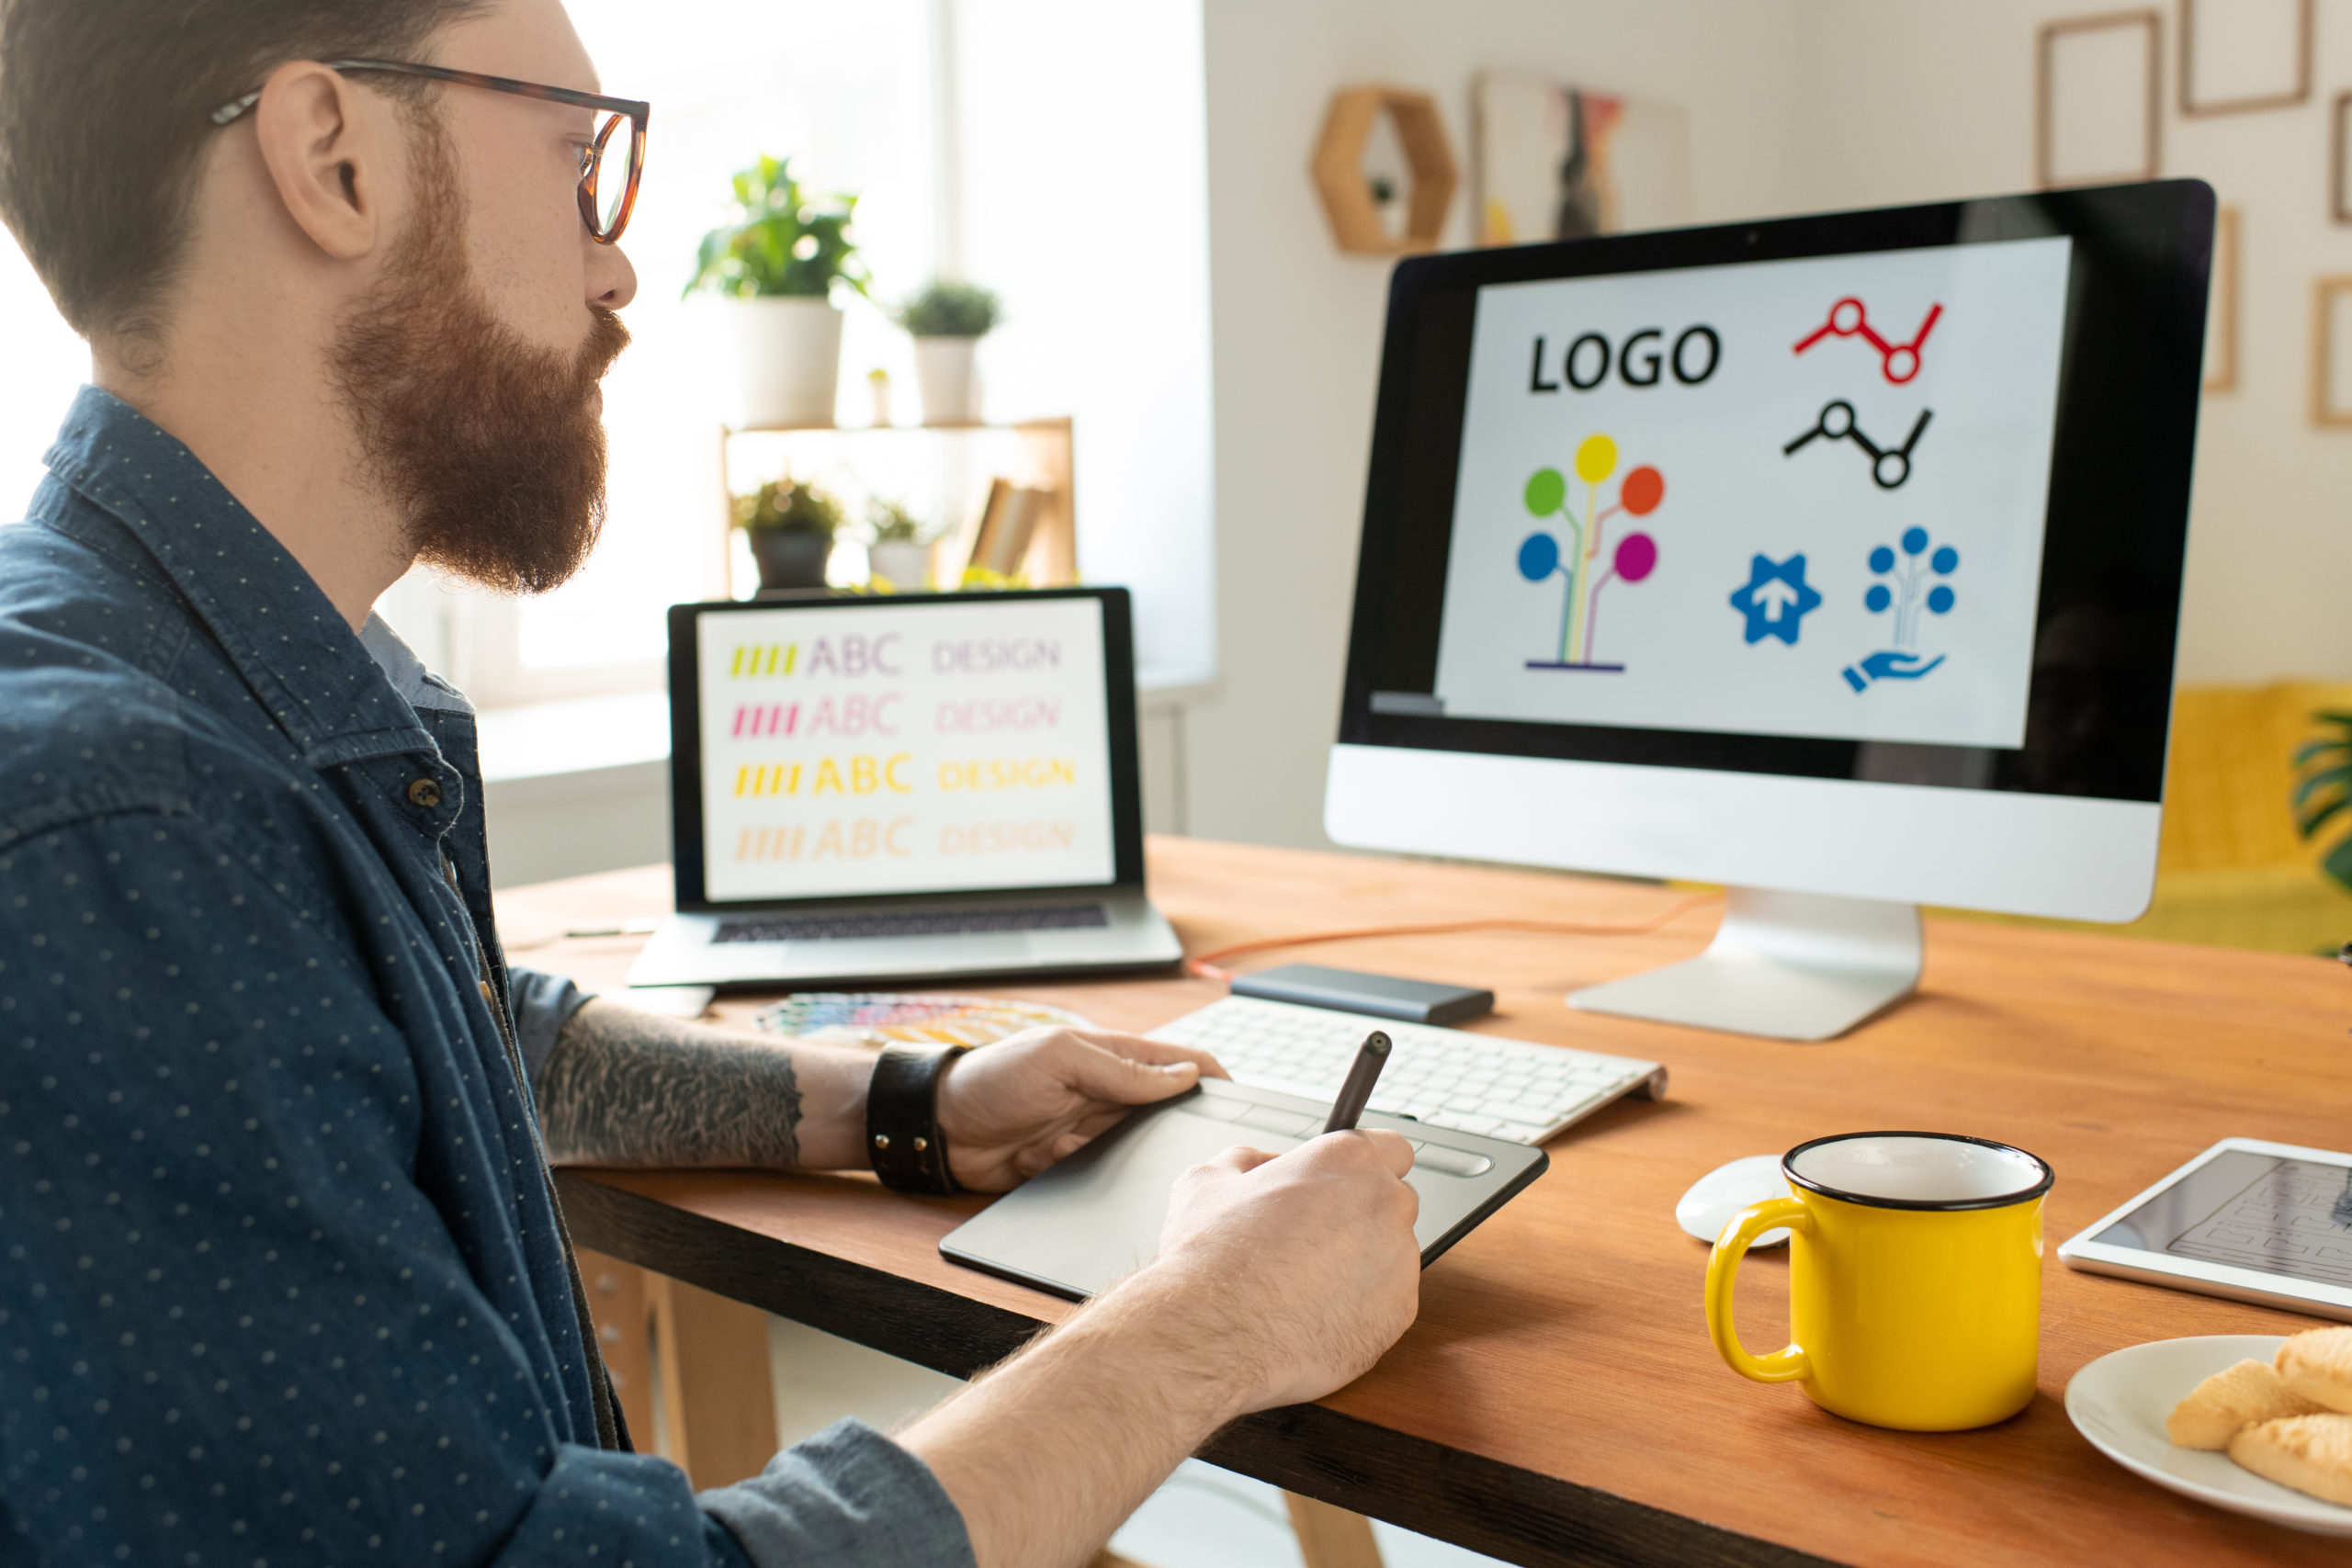 Discover how to design the perfect logo with ATS Graphics!